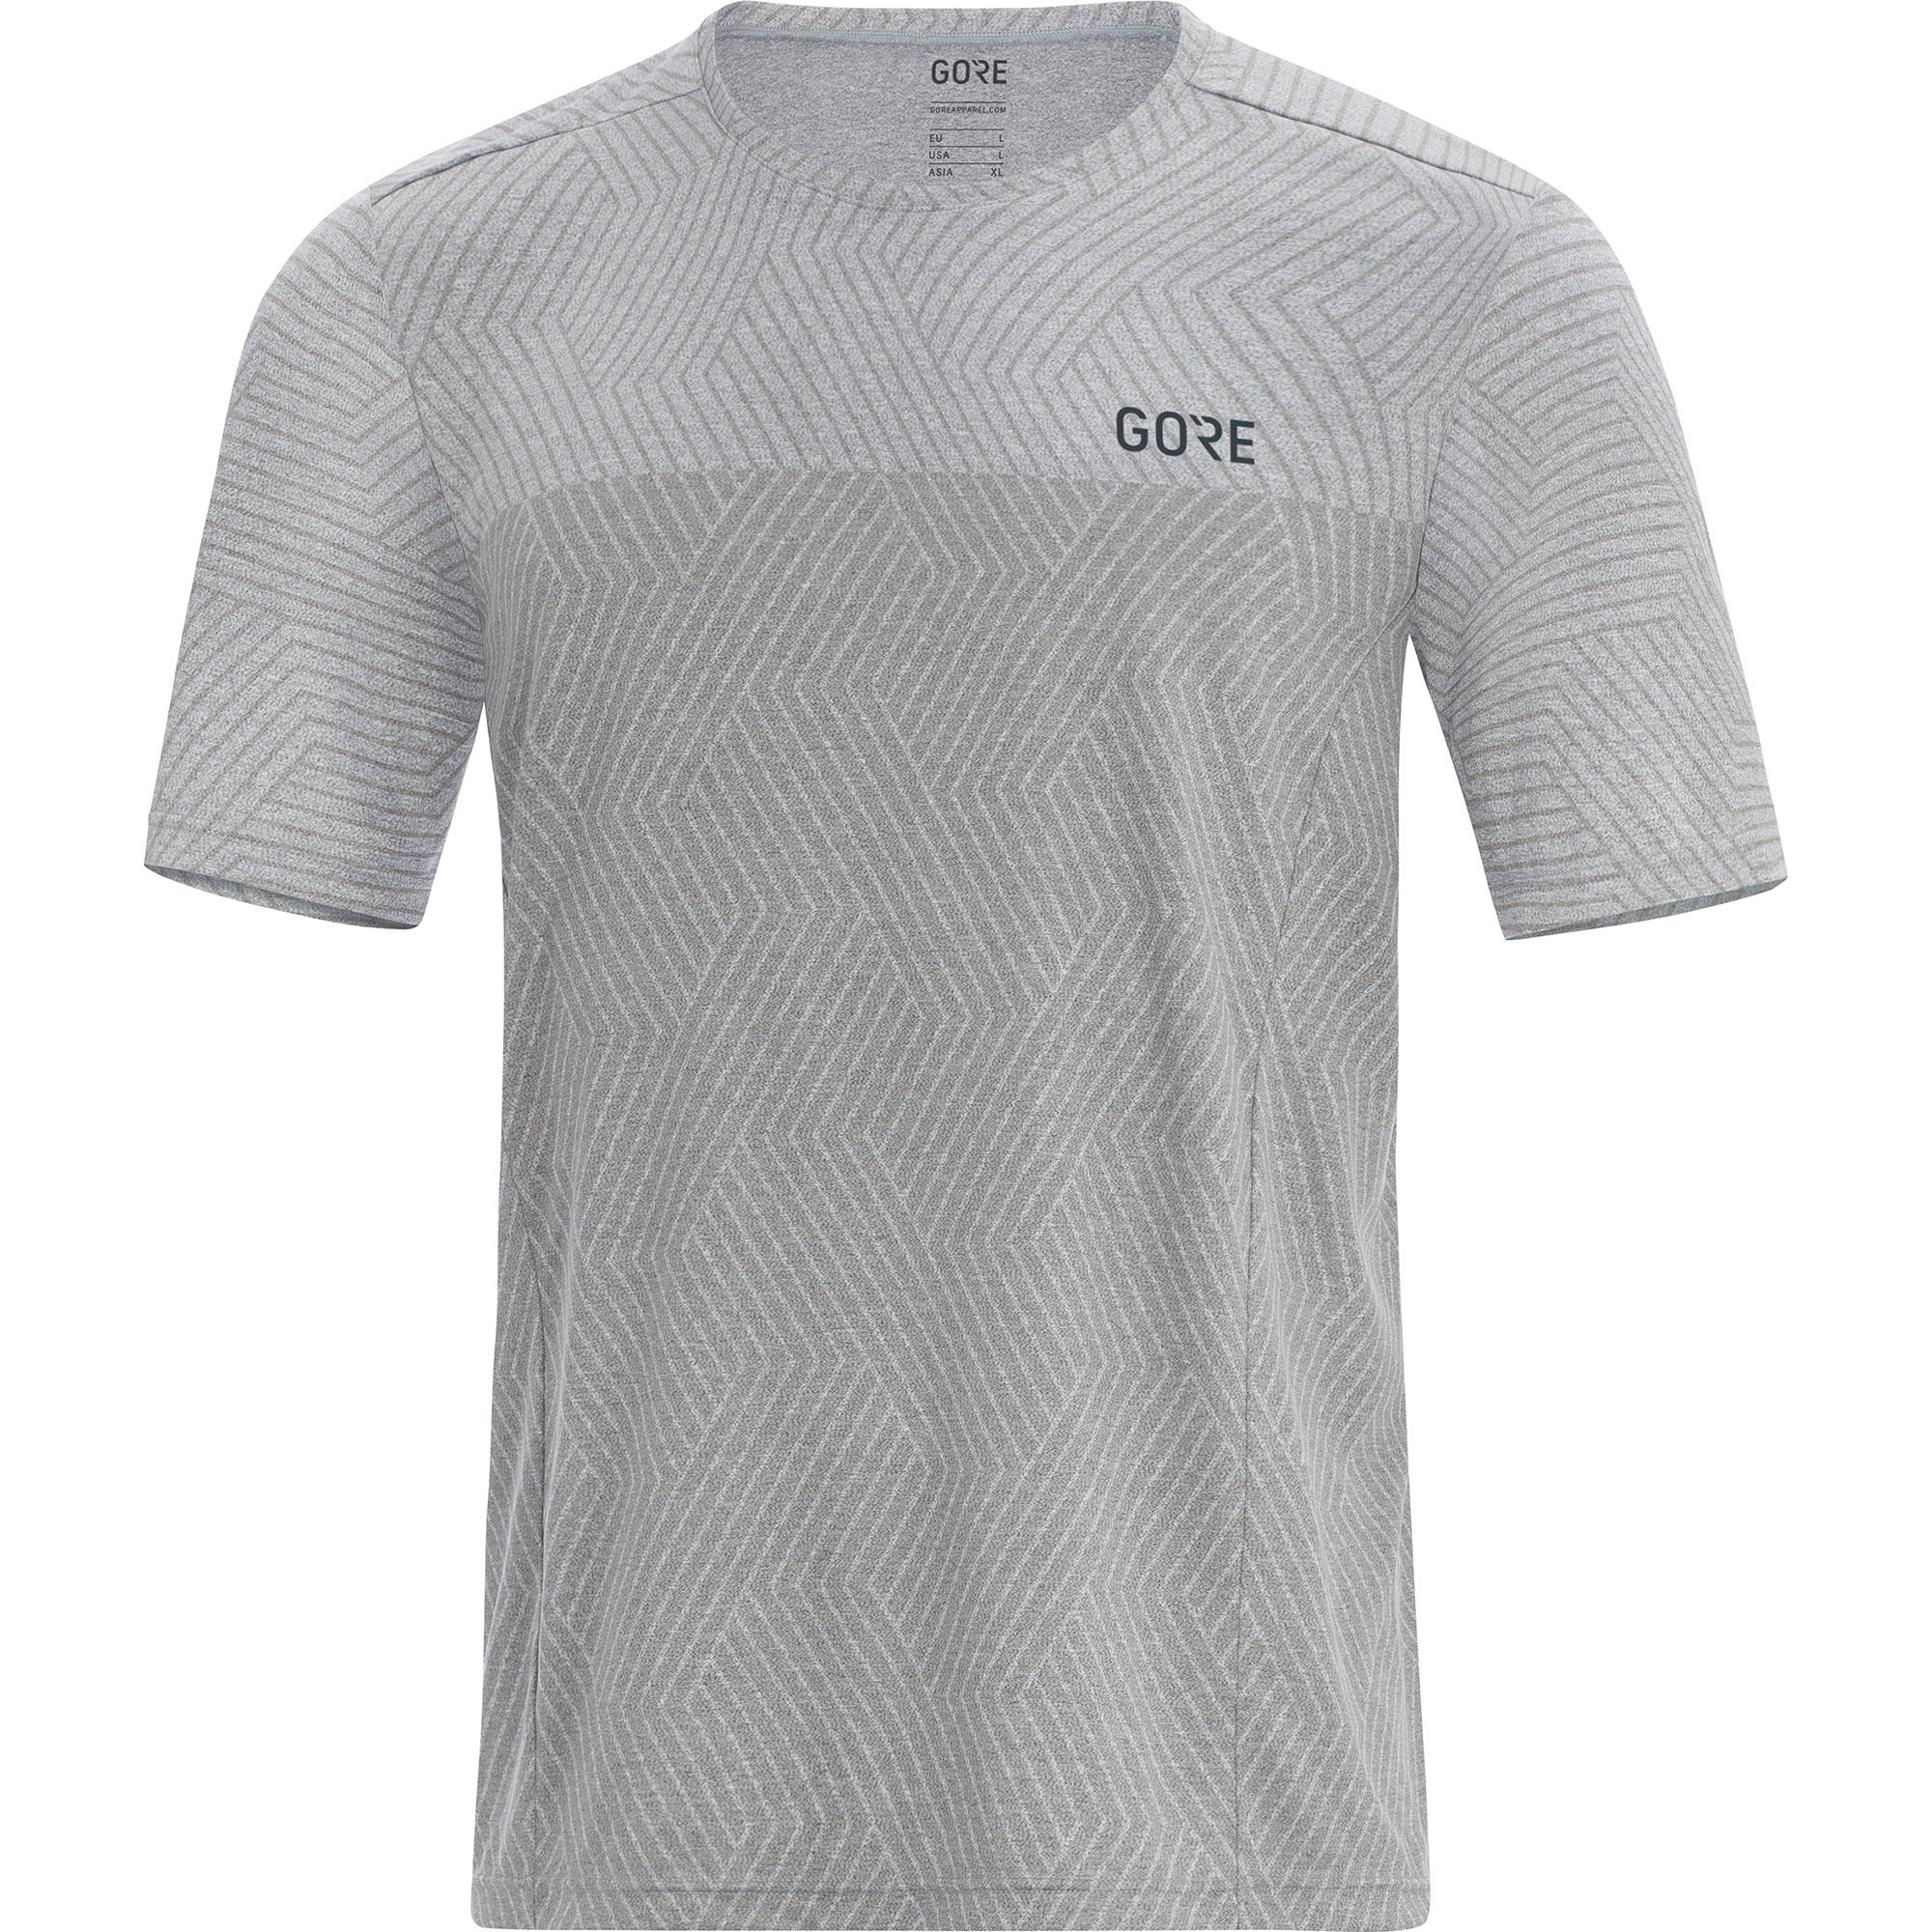 Gore R3 Optiline Shirt in Grau